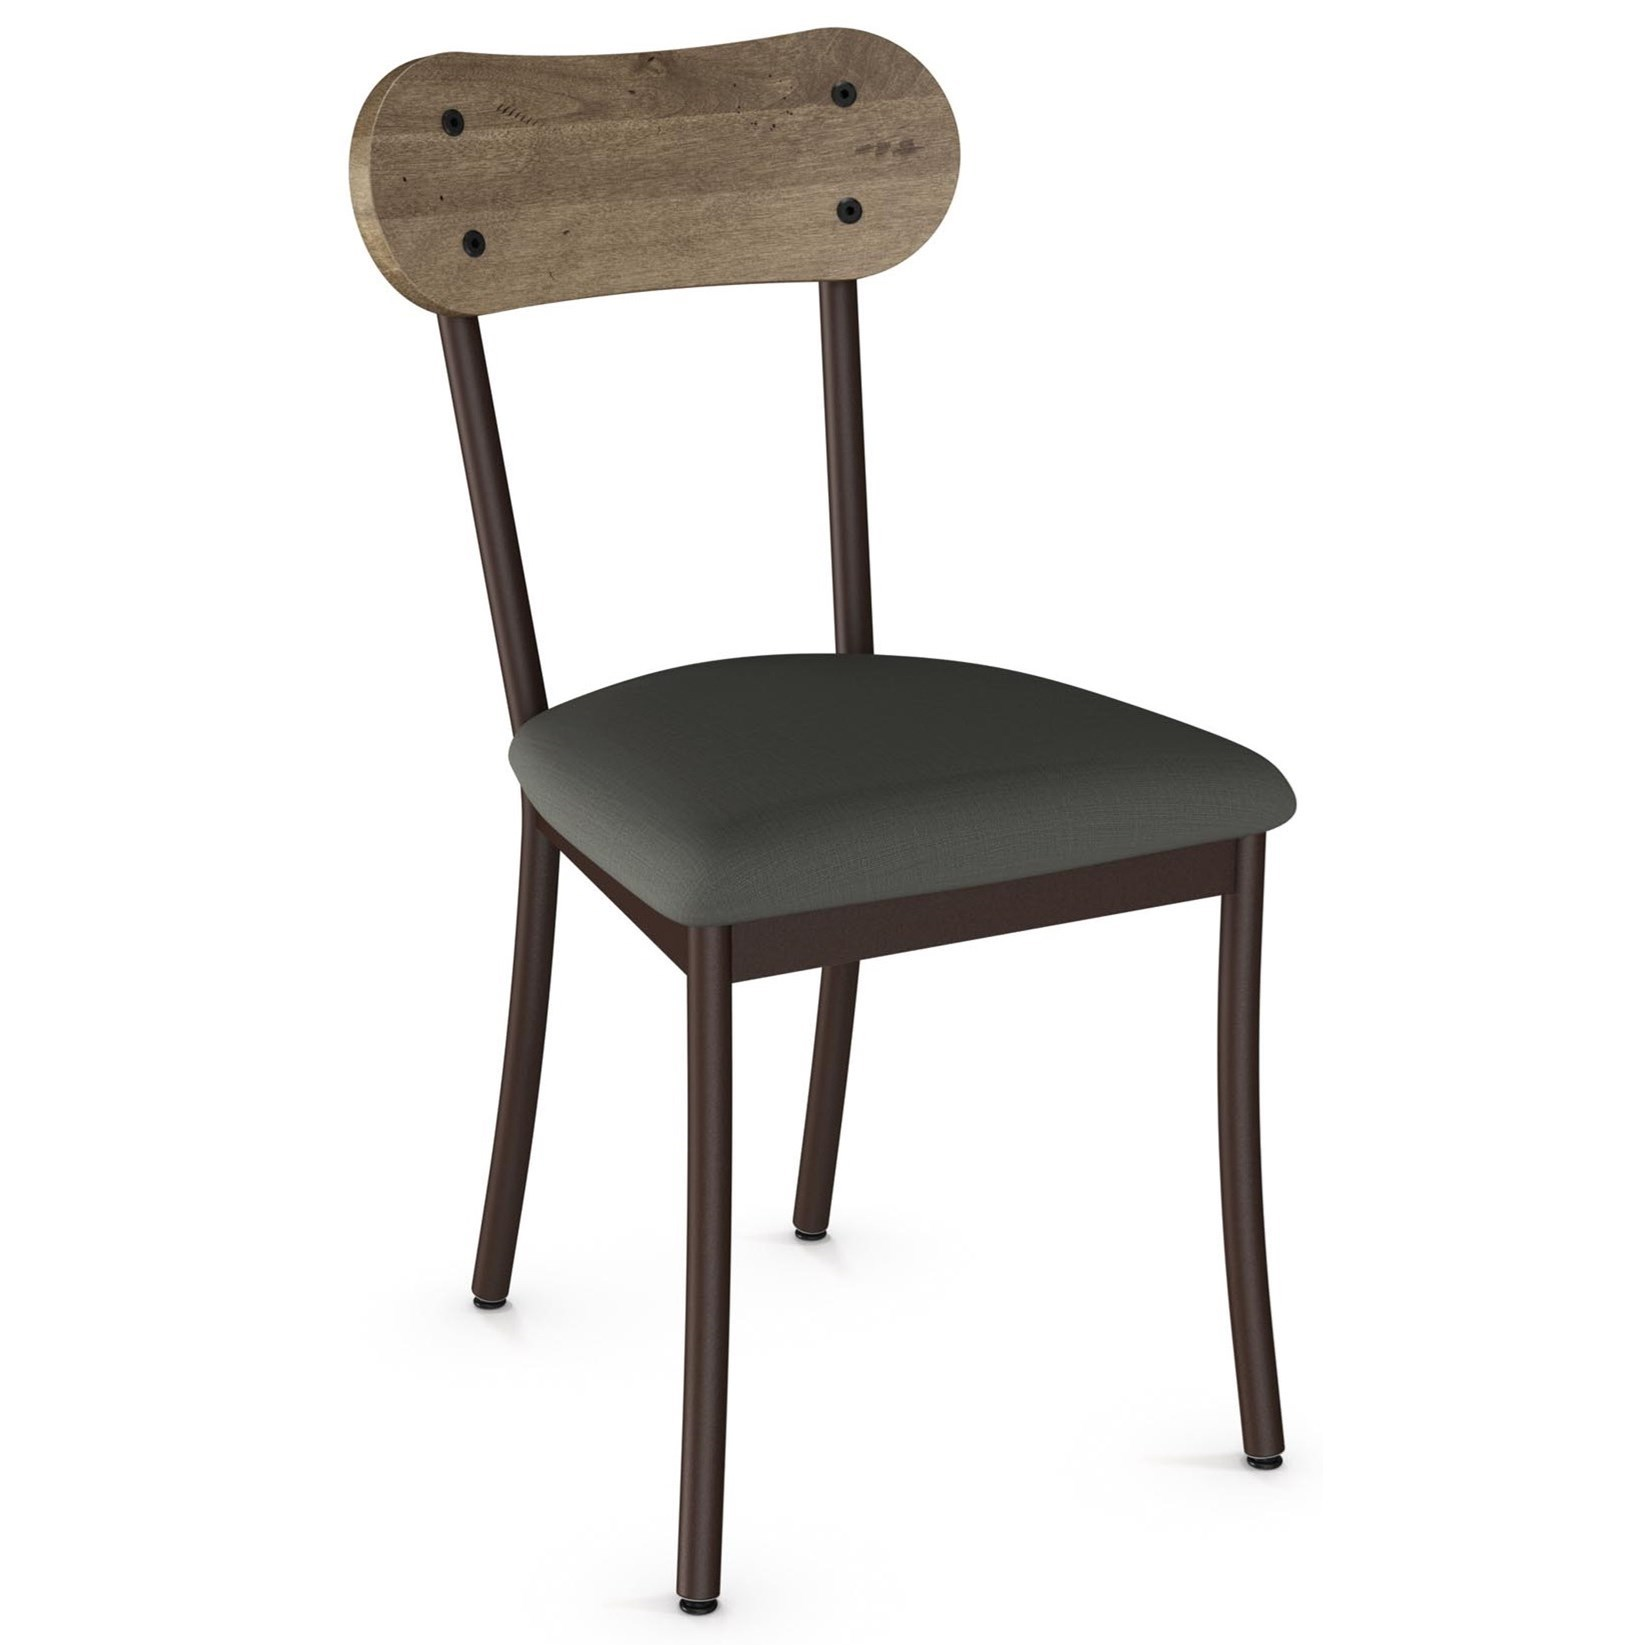 Industrial Bean Chair with Cushion Seat by Amisco at Dinette Depot